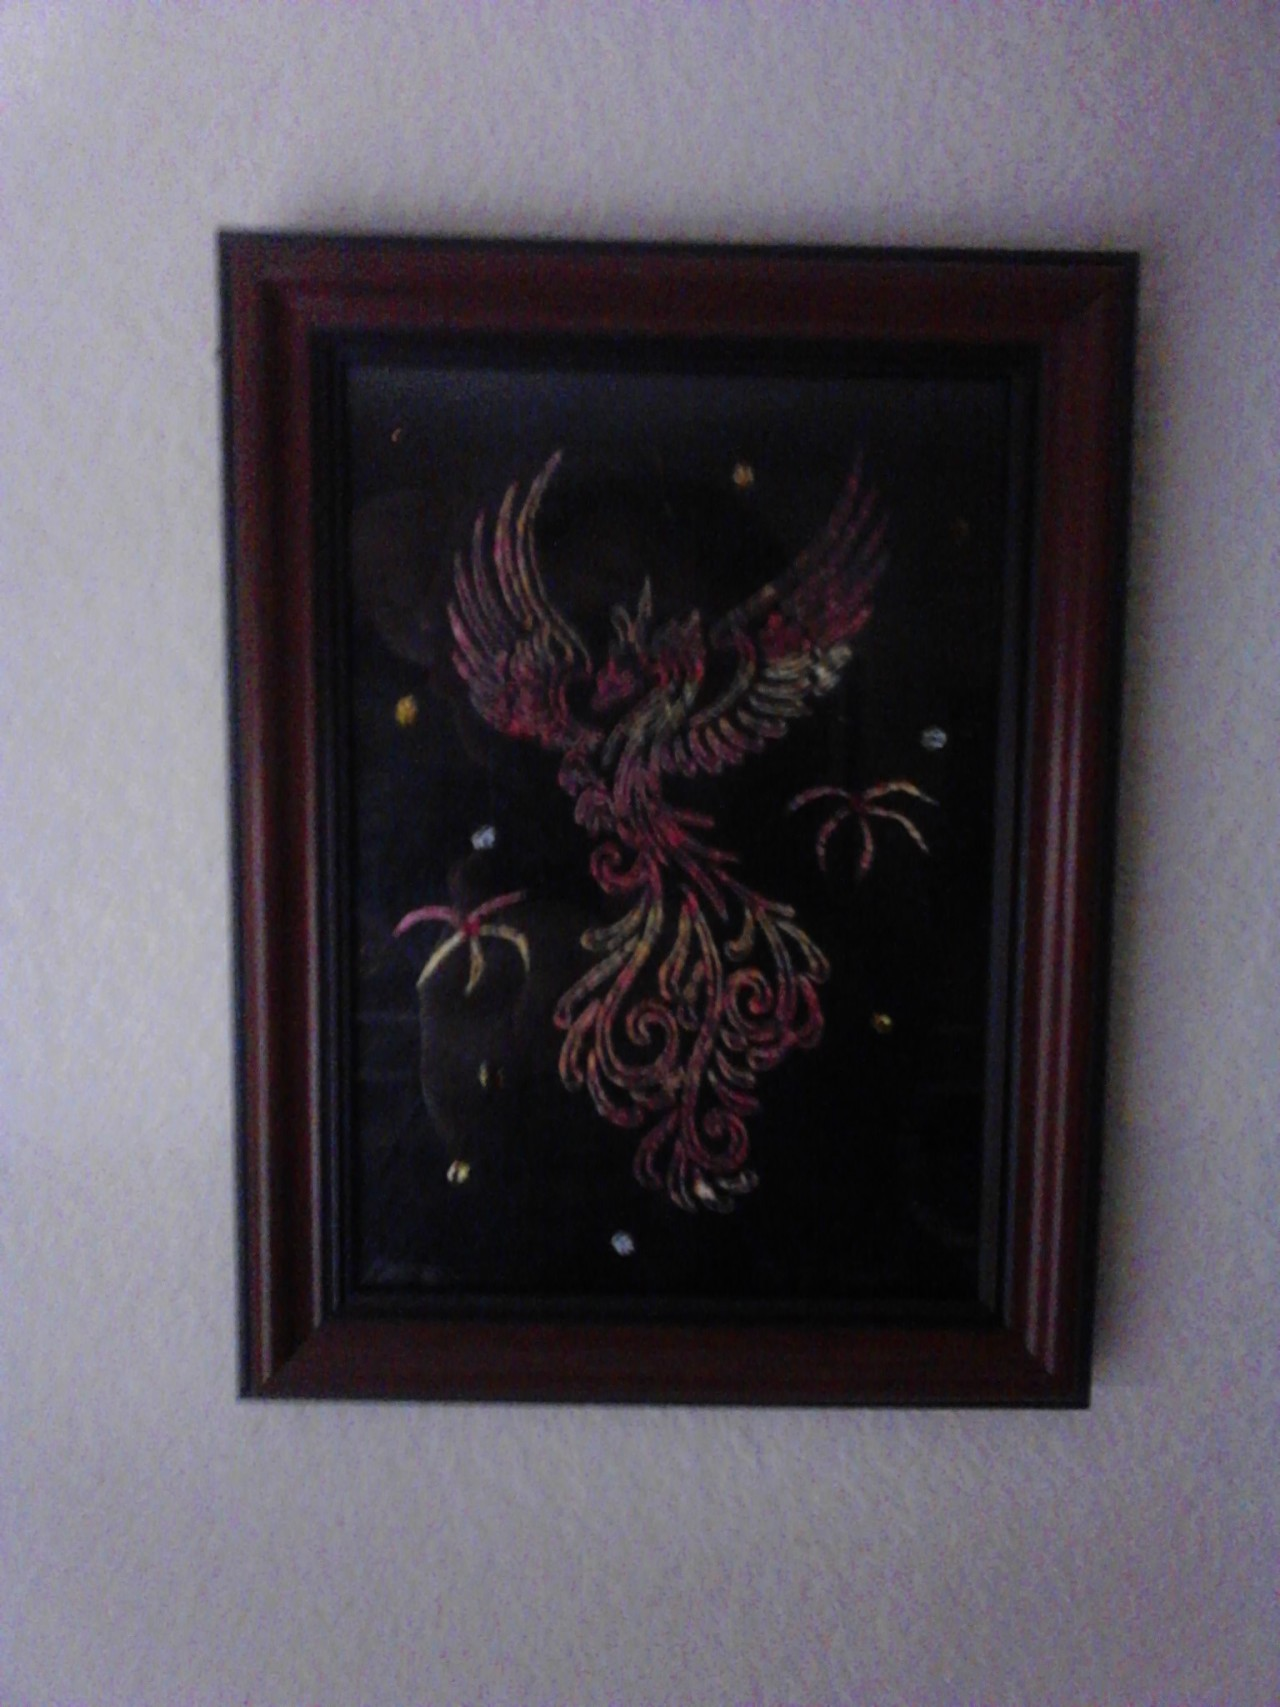 A really nice work of art I got for Xmas :D